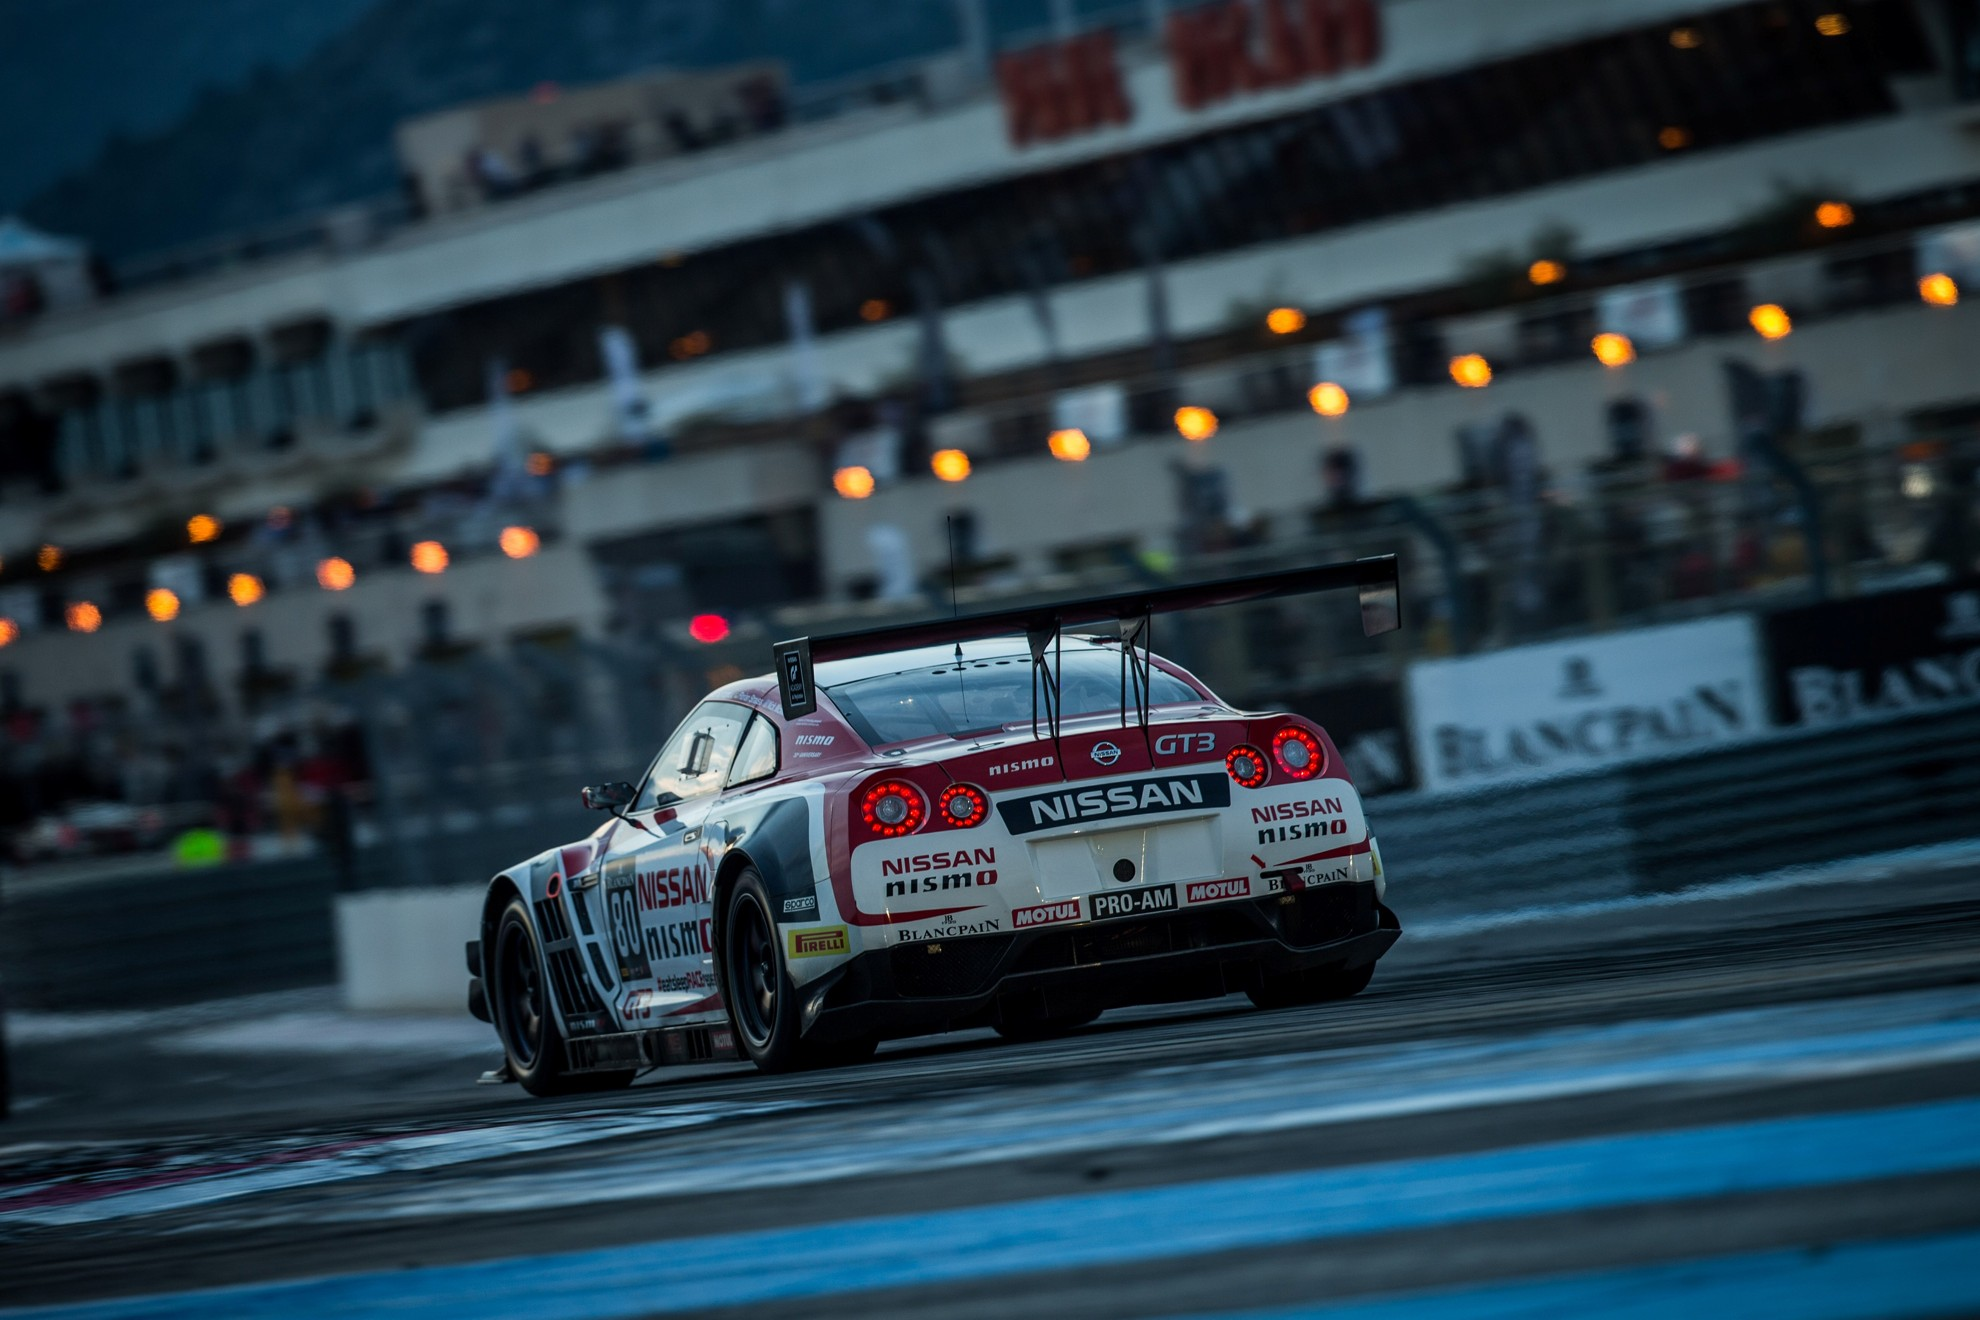 Nissan-Nismo-Race-car